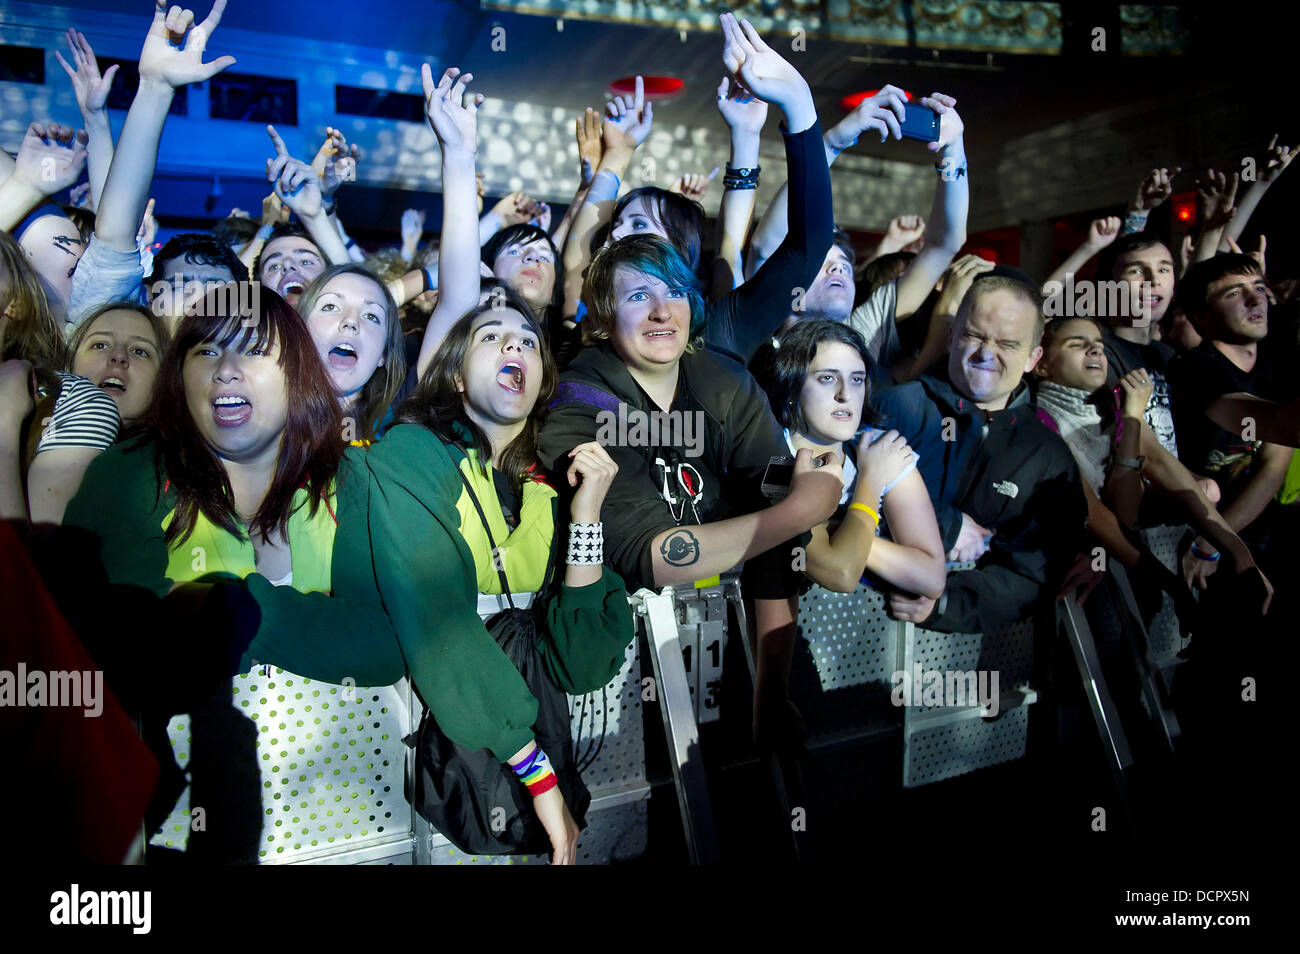 Fans of Rise Against performing live at Brixton Academy London, England 09.11.11 - Stock Image